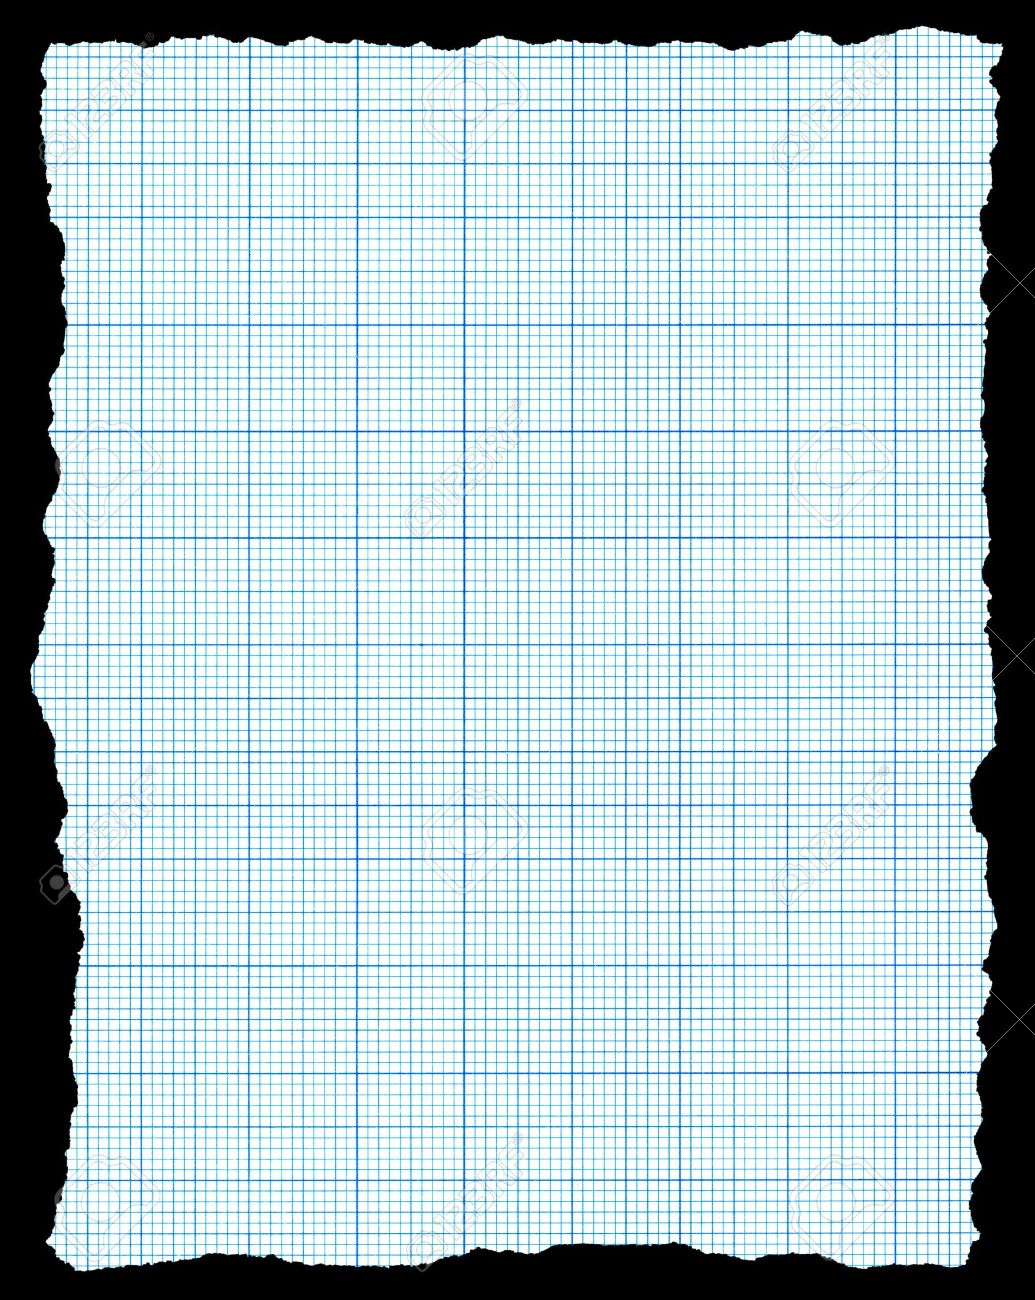 Torn blue graph paper isolated on a black background. Stock Photo - 7625876